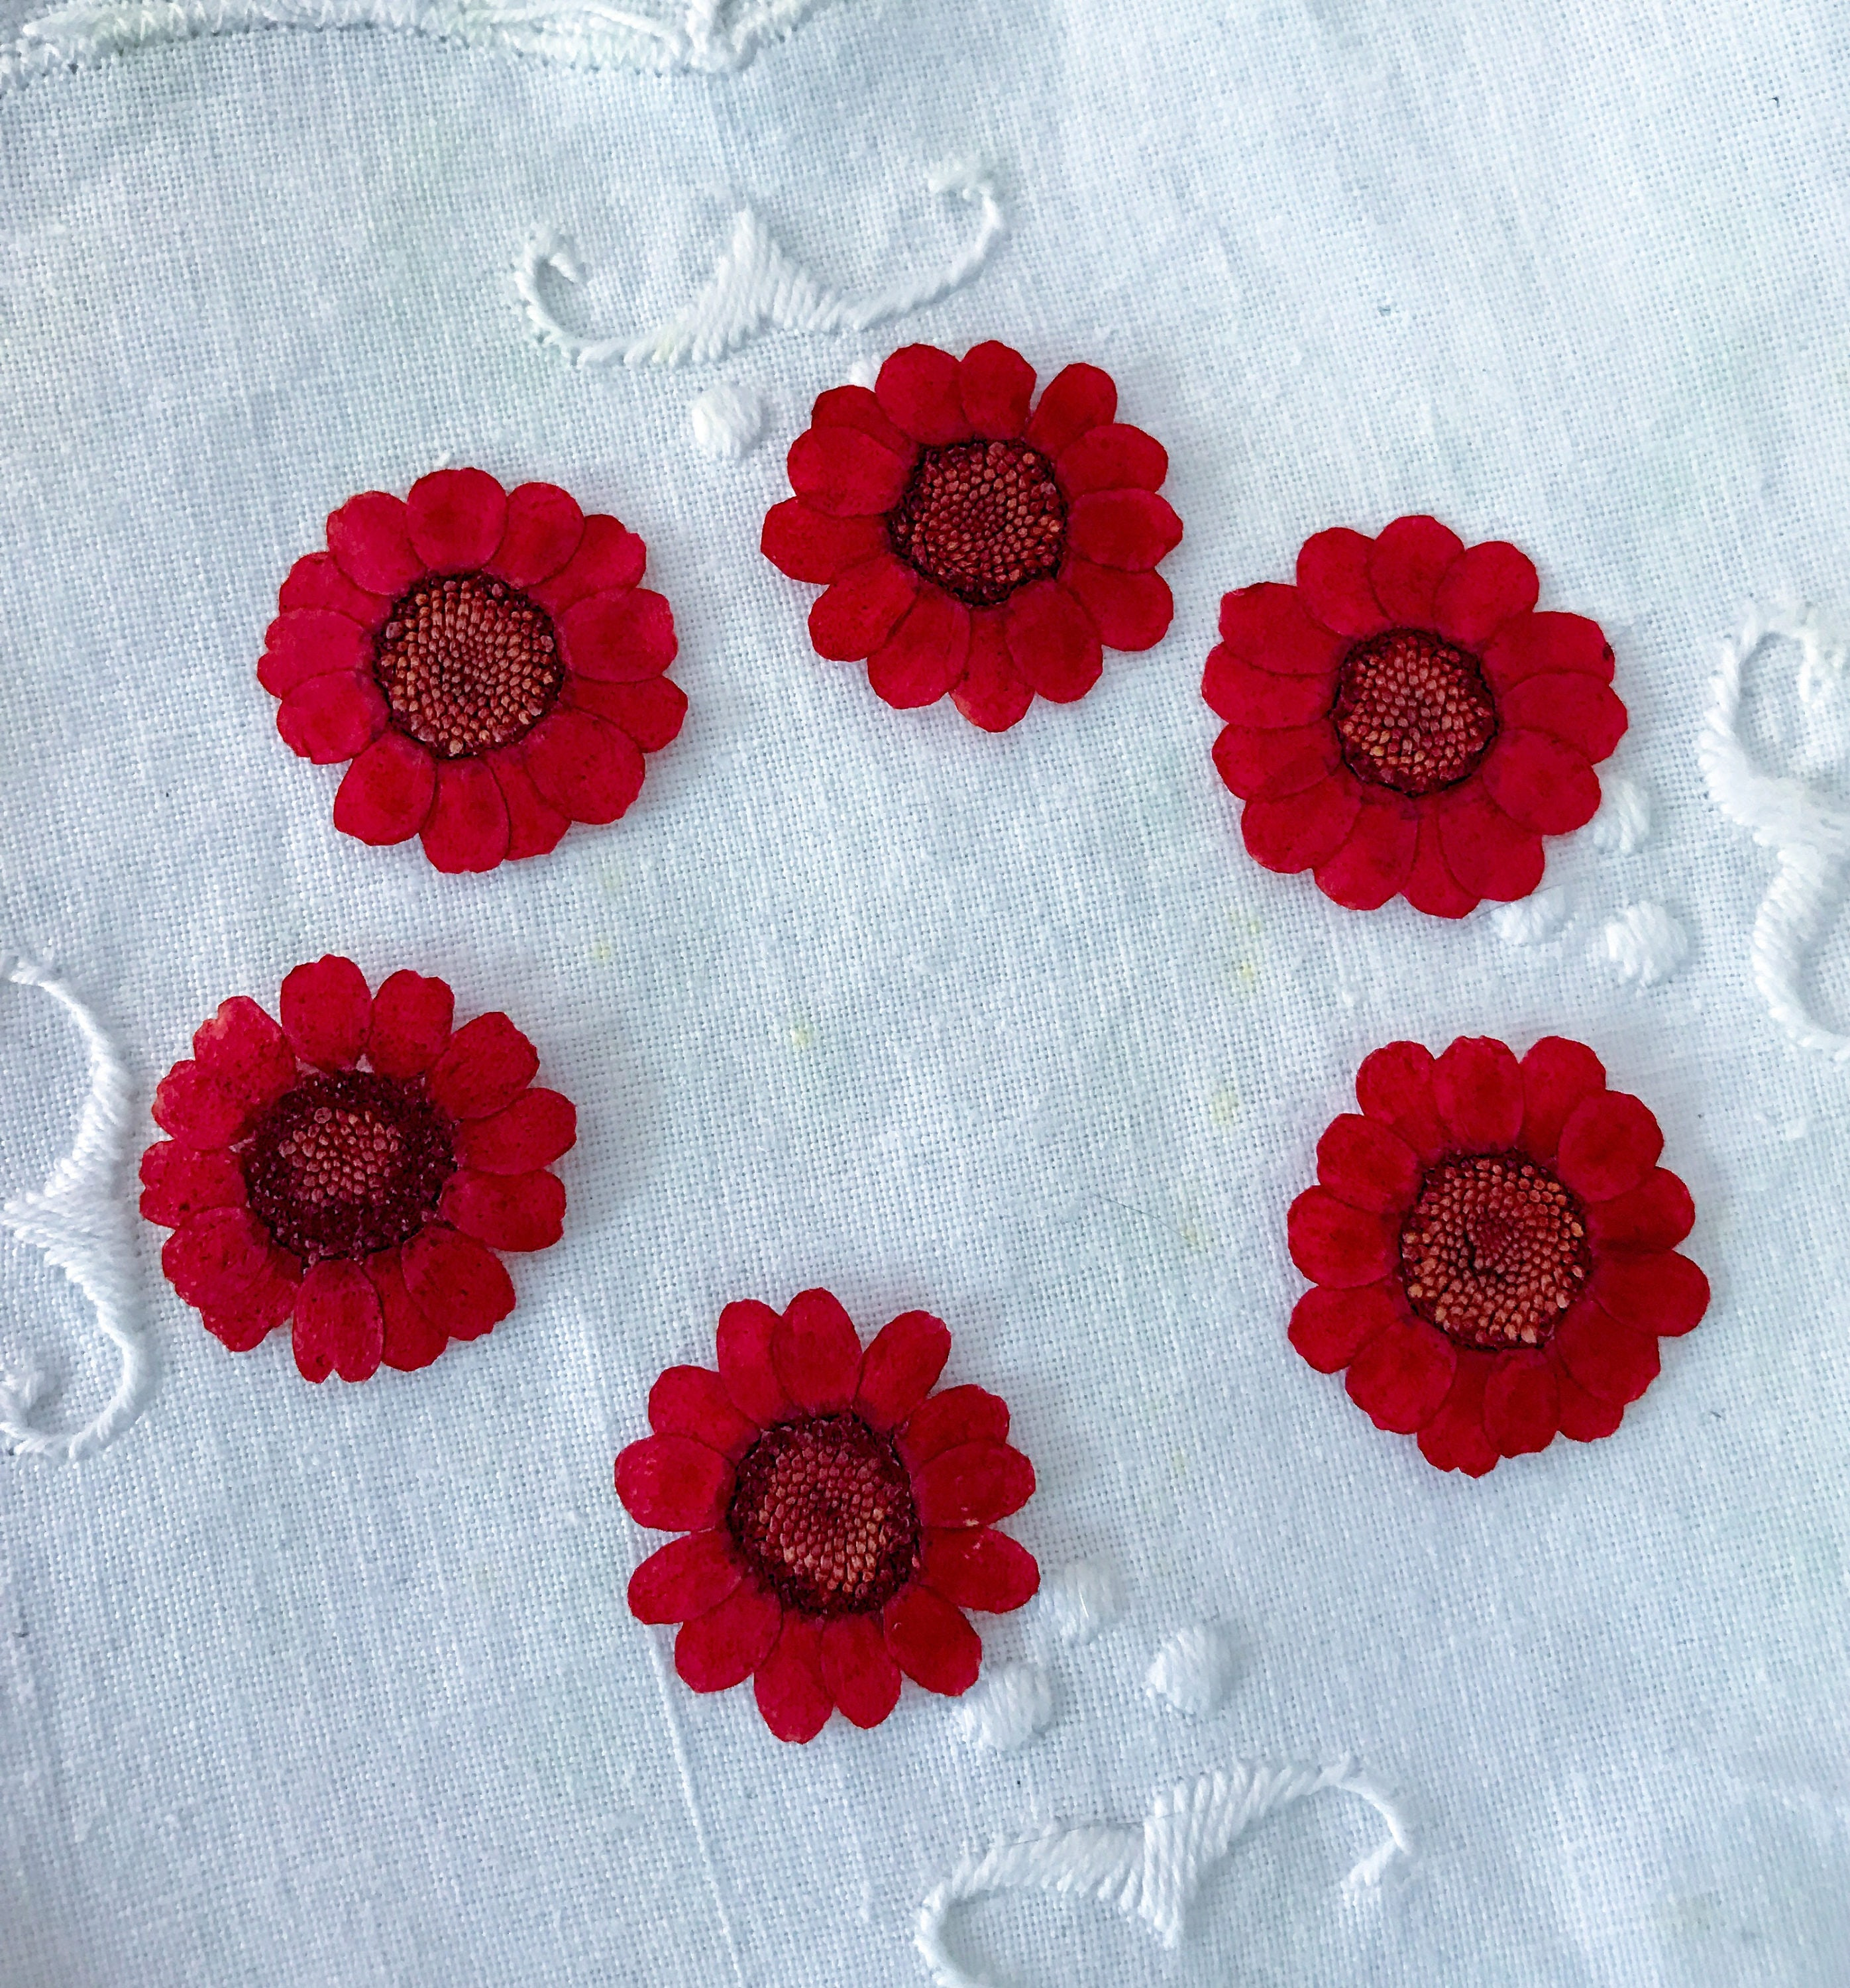 Real Red Carnation Small Red Flowers Pressed Red Flower Pressed ...